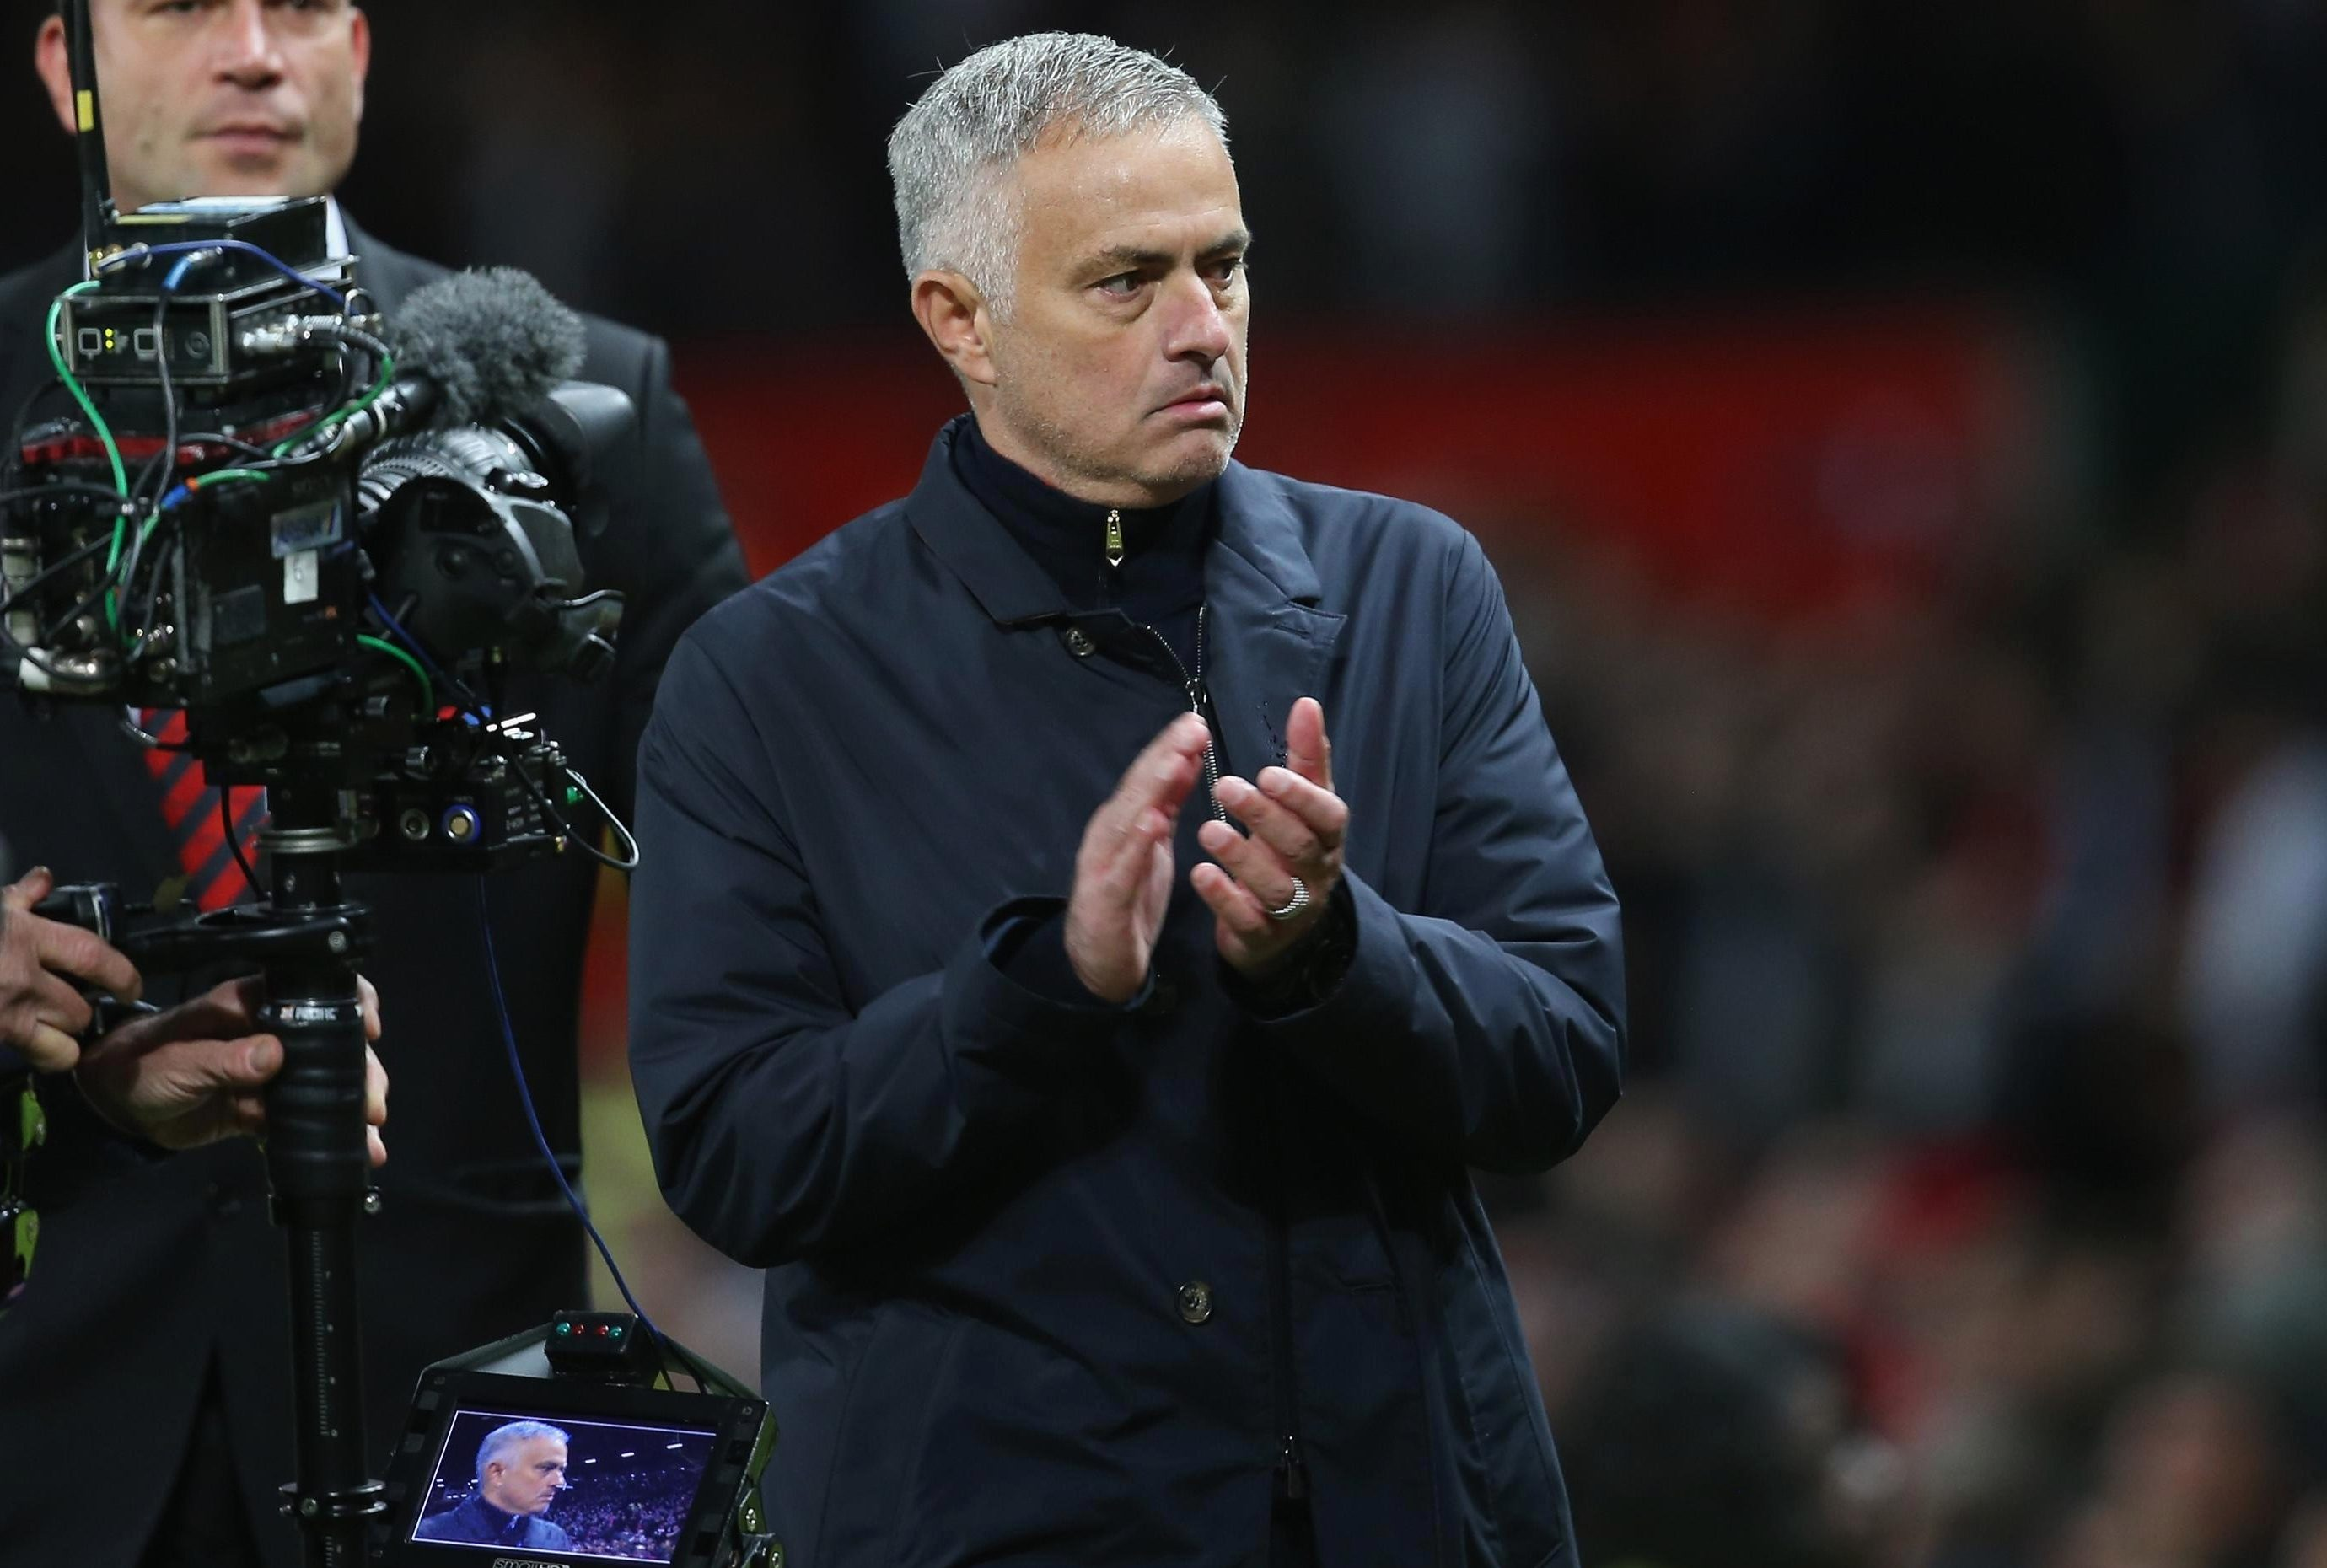 Mourinho listened to his record signing's advice at half-time before his men mounted a stunning comeback